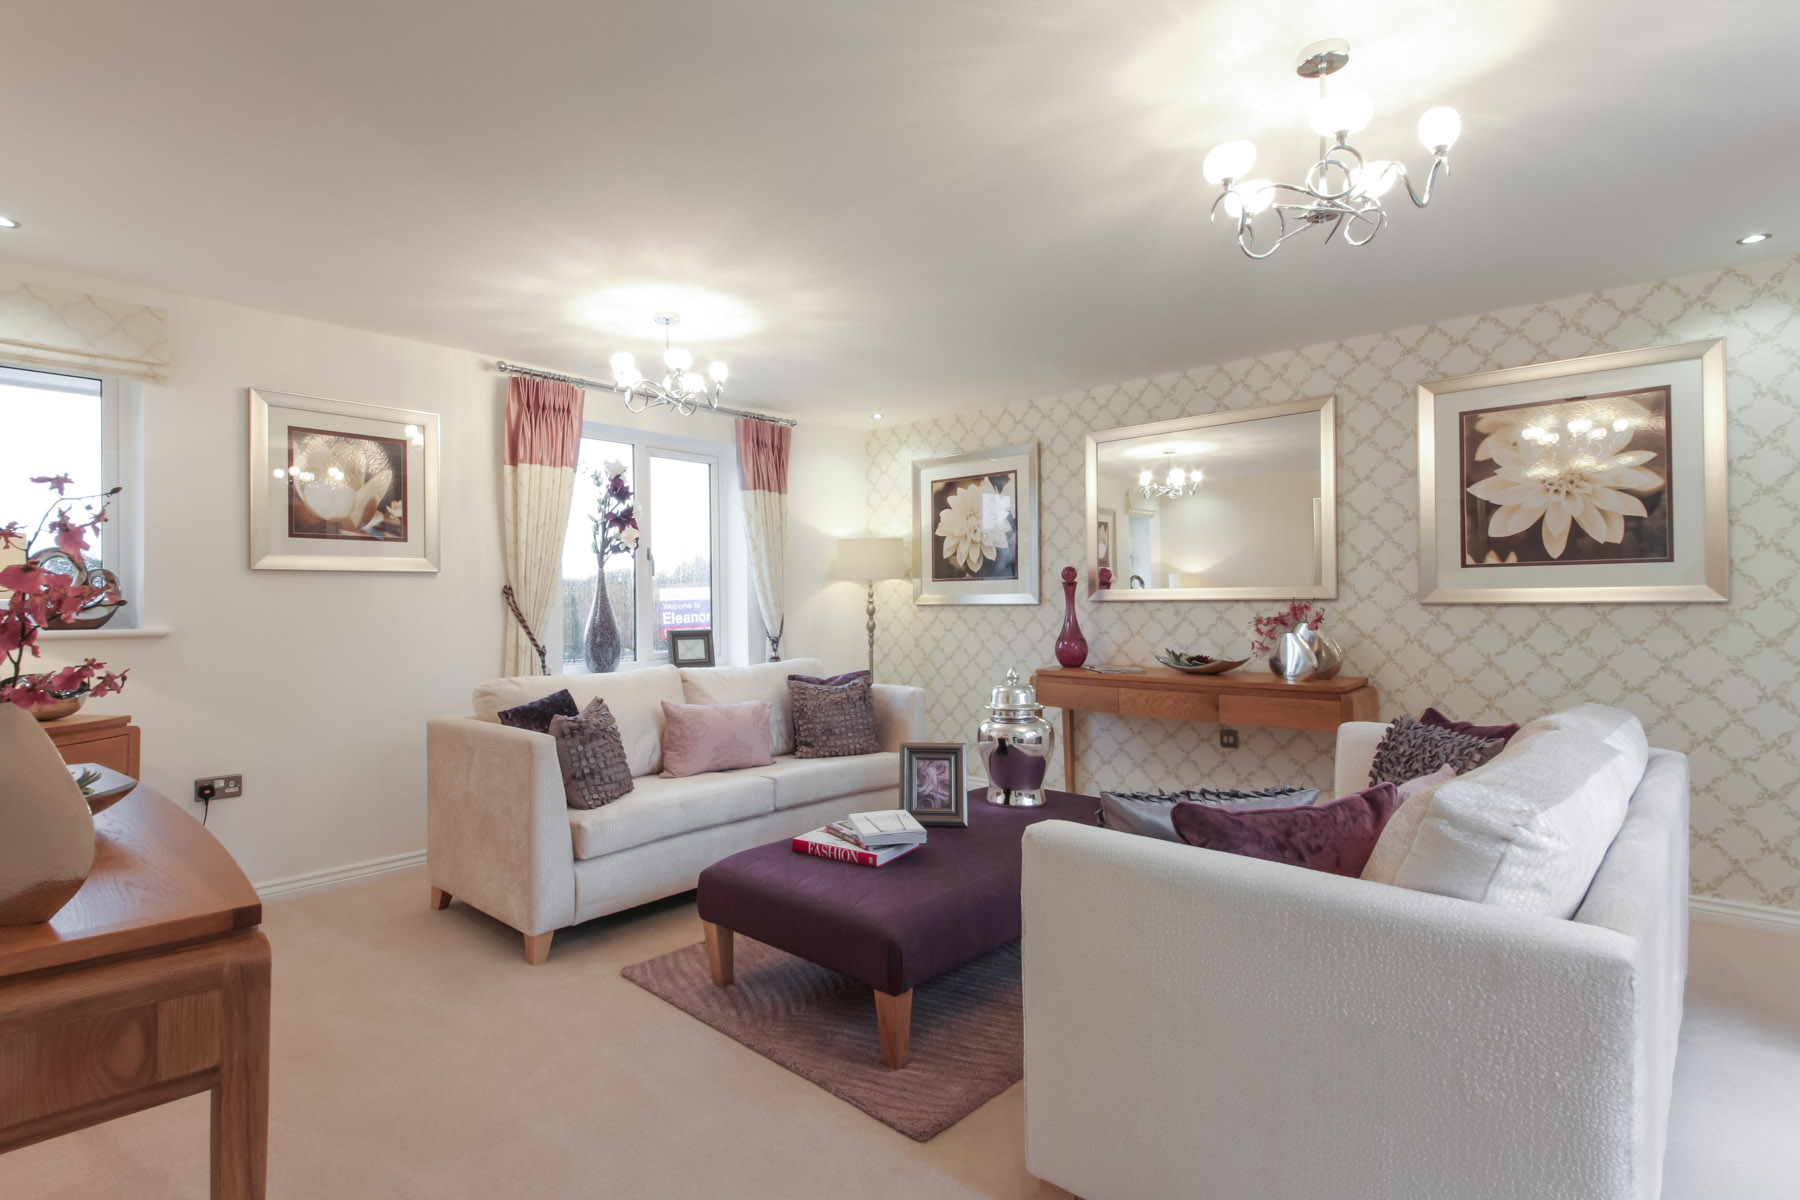 Typical Taylor Wimpey living room